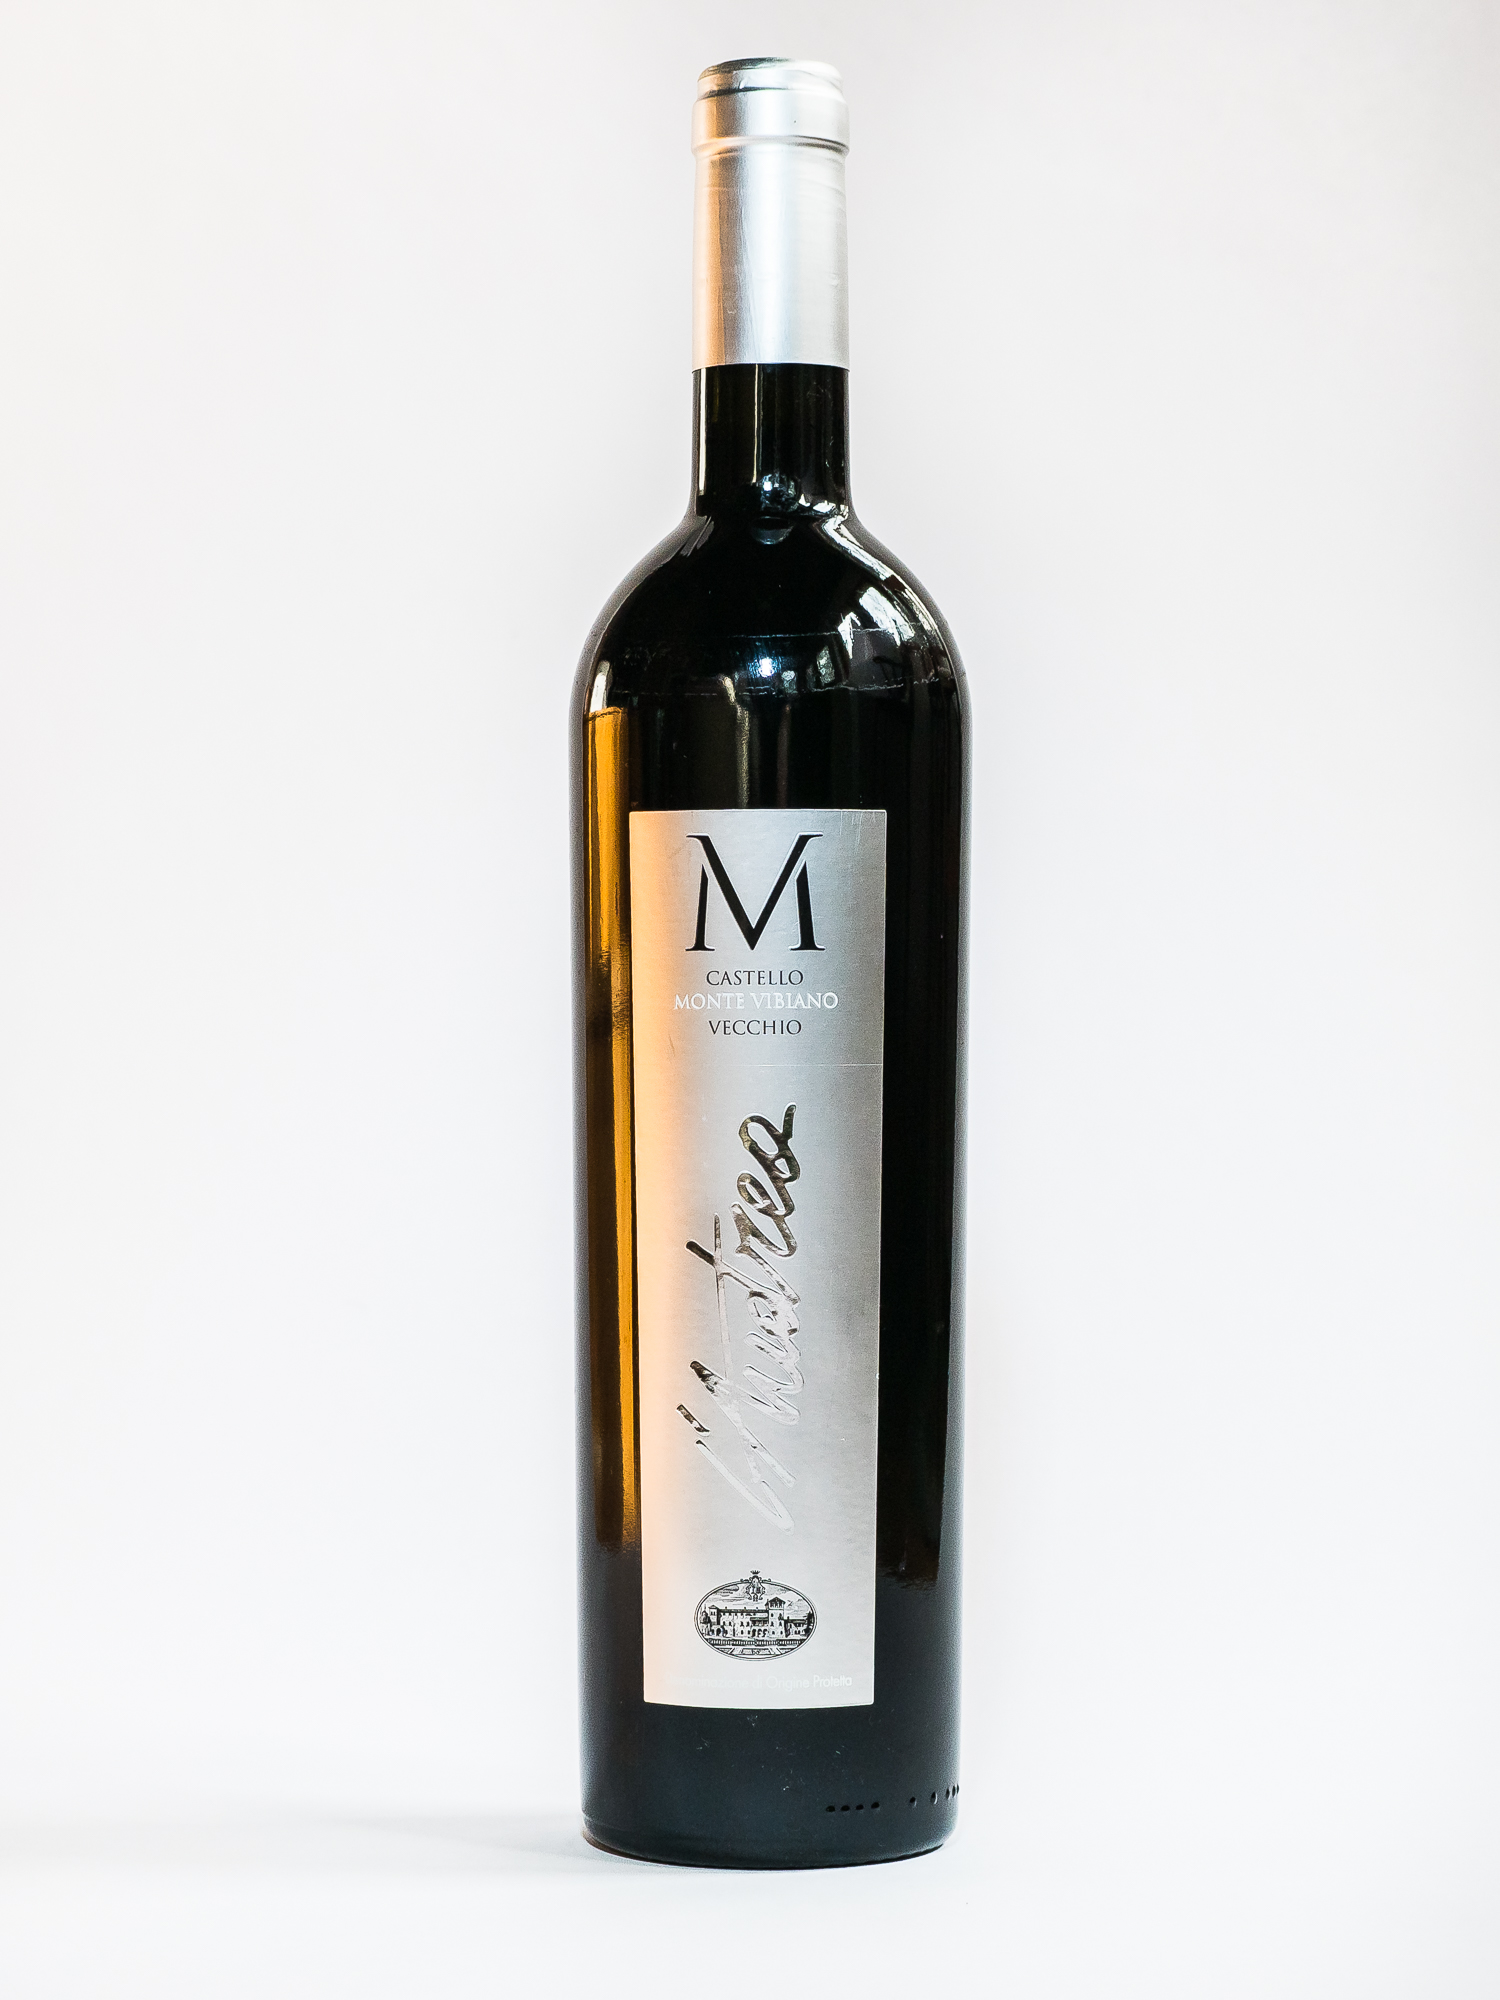 L'Andrea 2008    Producer:   Castello Monte Vibiano    Region:  Umbria  Grapes:  Sangiovese, Syrah, Cabernet Sauvignon, Cabernet Franc, Merlot  Characteristics:  A rich nose of bramble jelly to jelly pepper and notes of cocoa powder and coffee. A remarkably fresh flavor with a sweet finish.